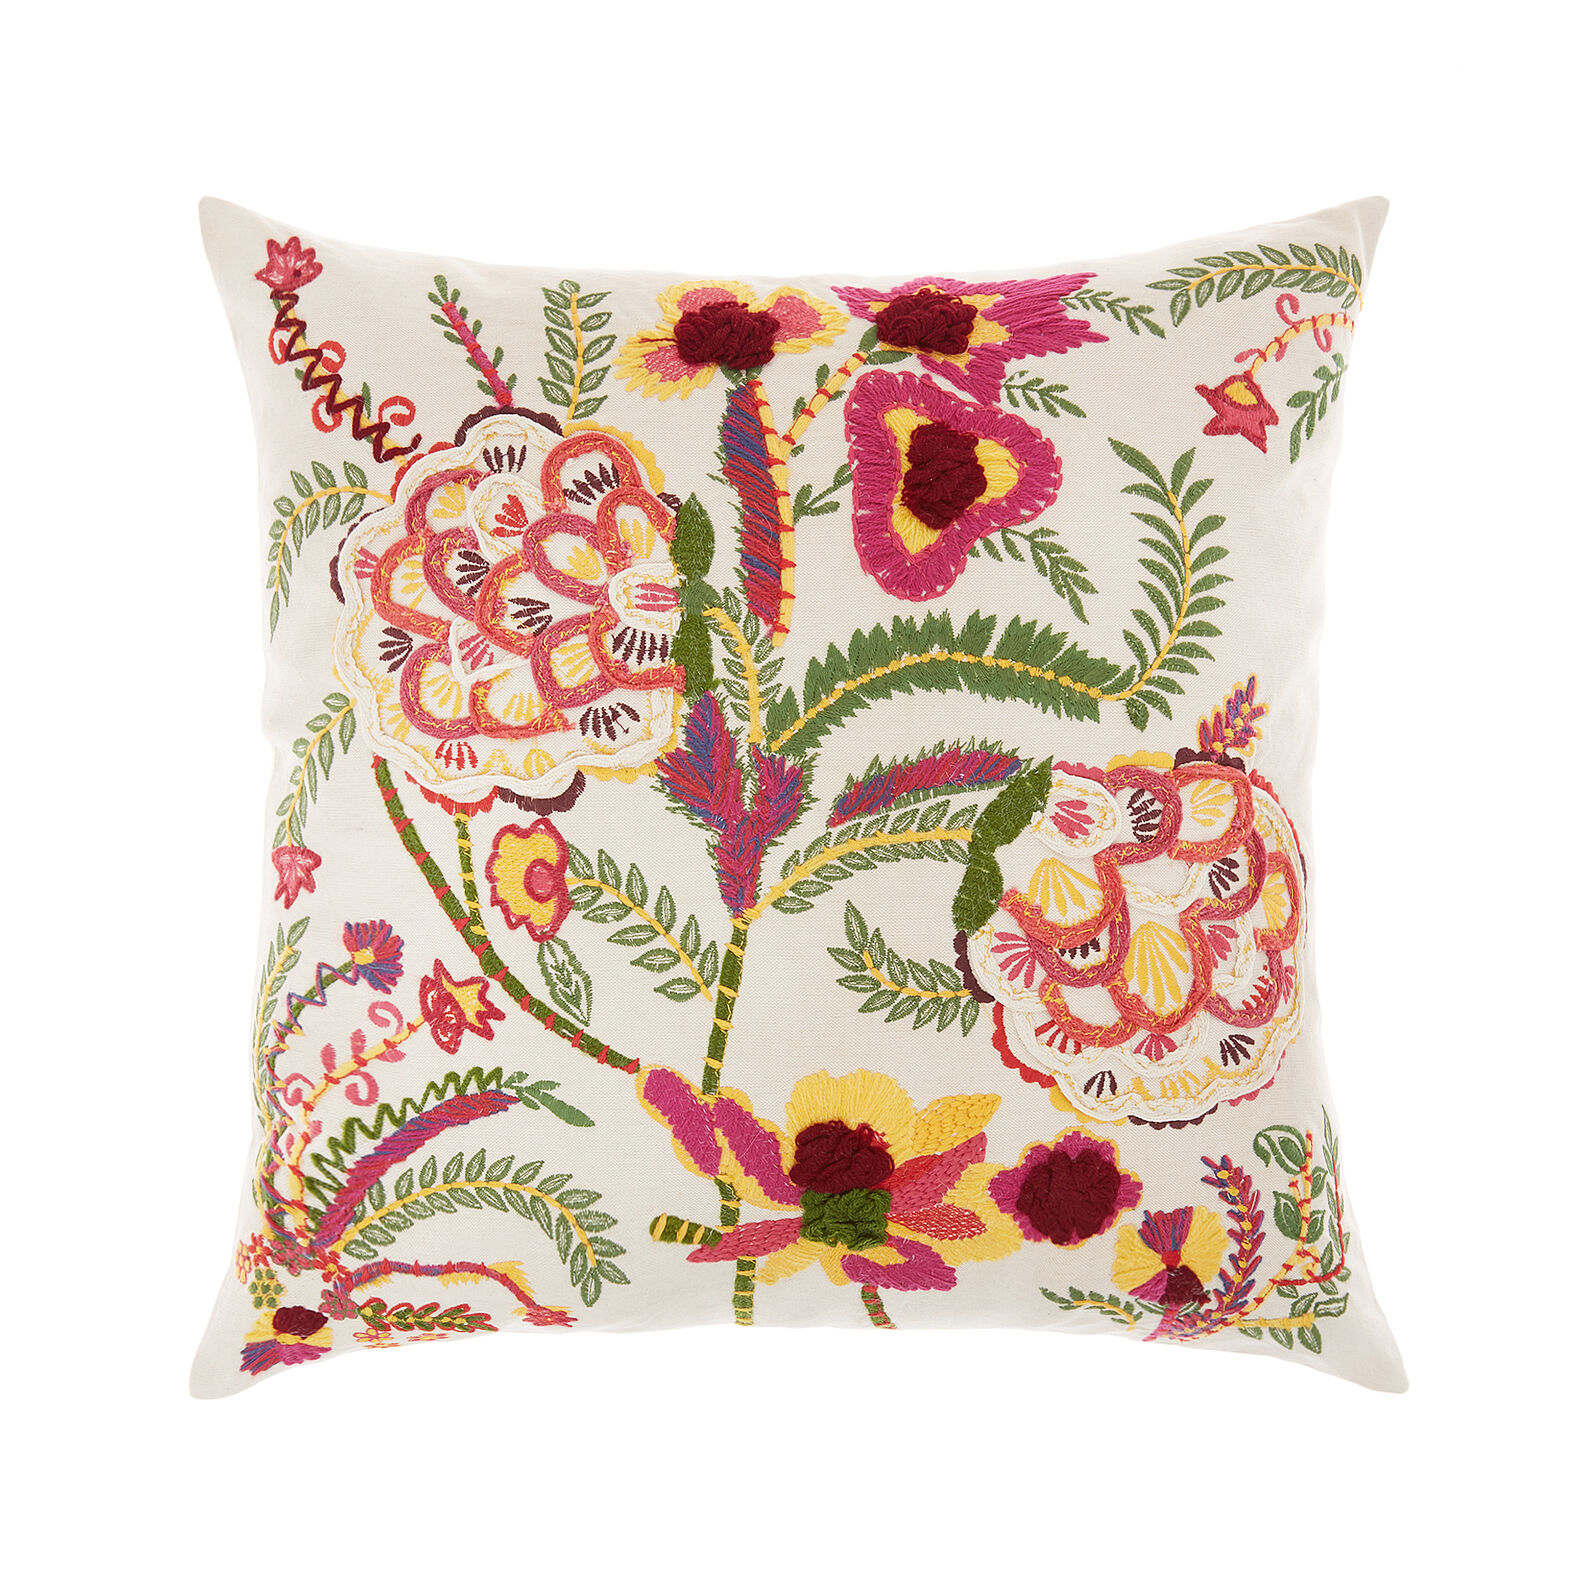 Cushion with floral embroidery and print